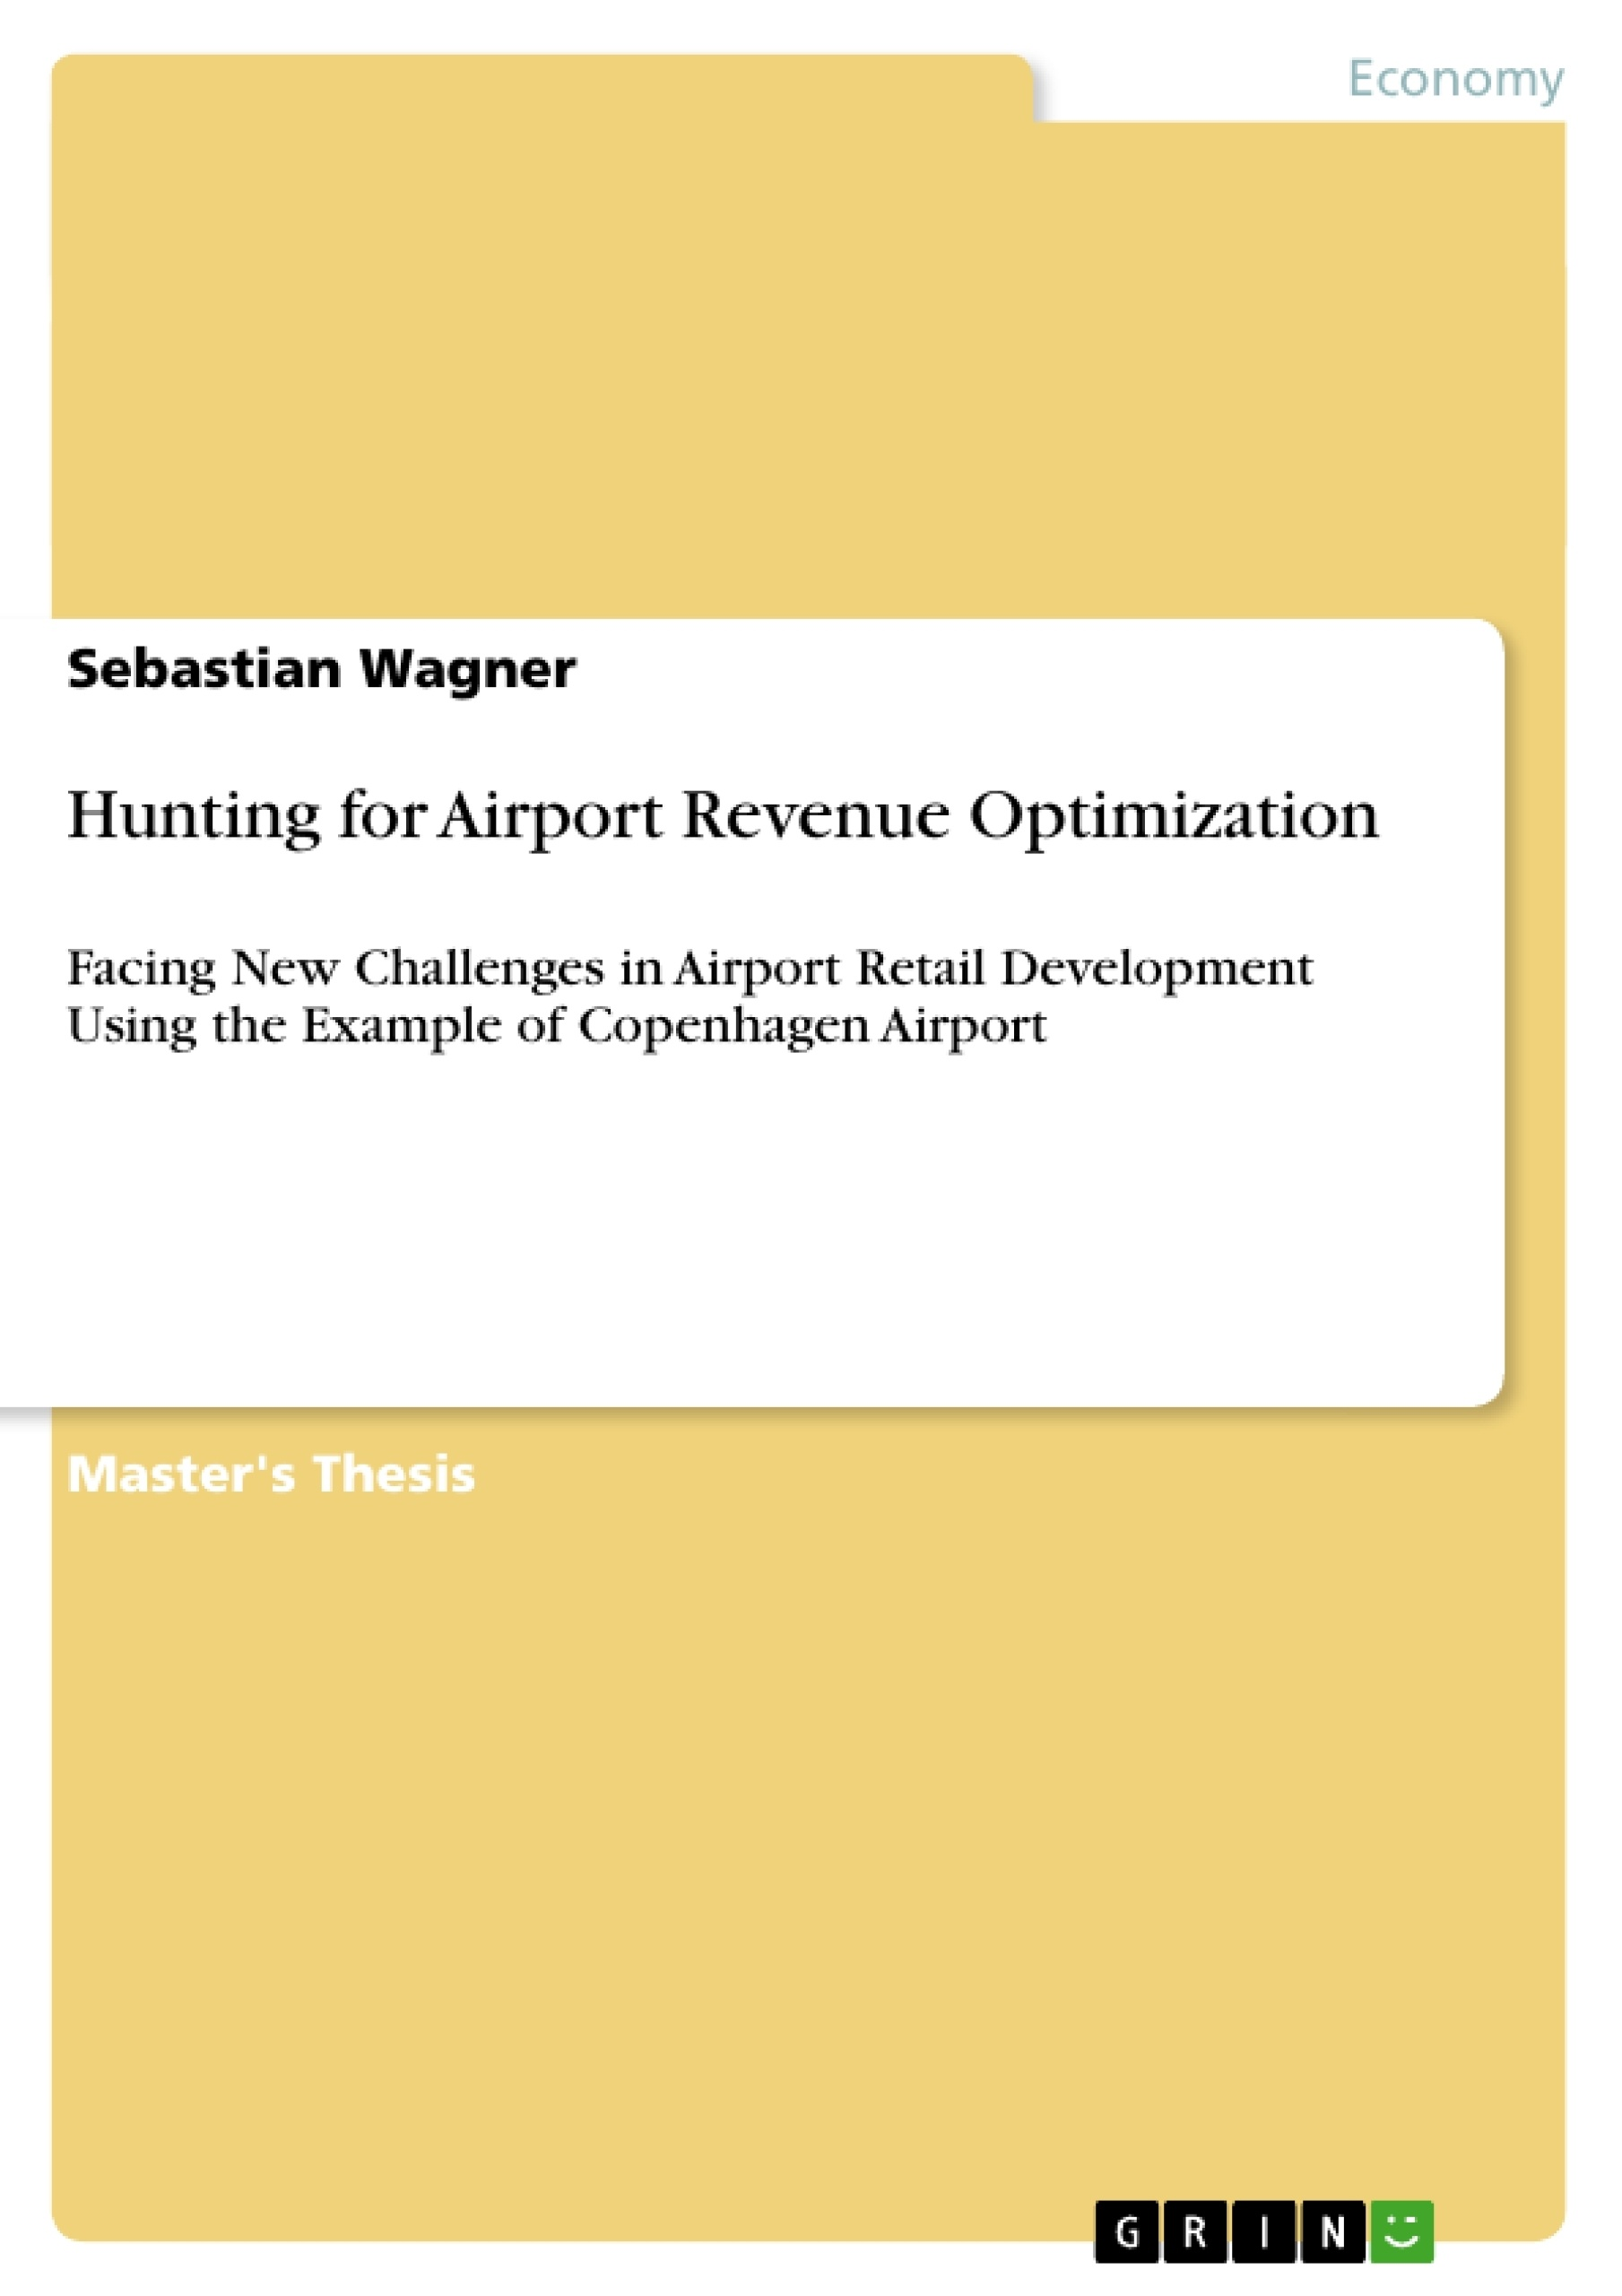 hunting for airport revenue optimization publish your master s hunting for airport revenue optimization publish your master s thesis bachelor s thesis essay or term paper